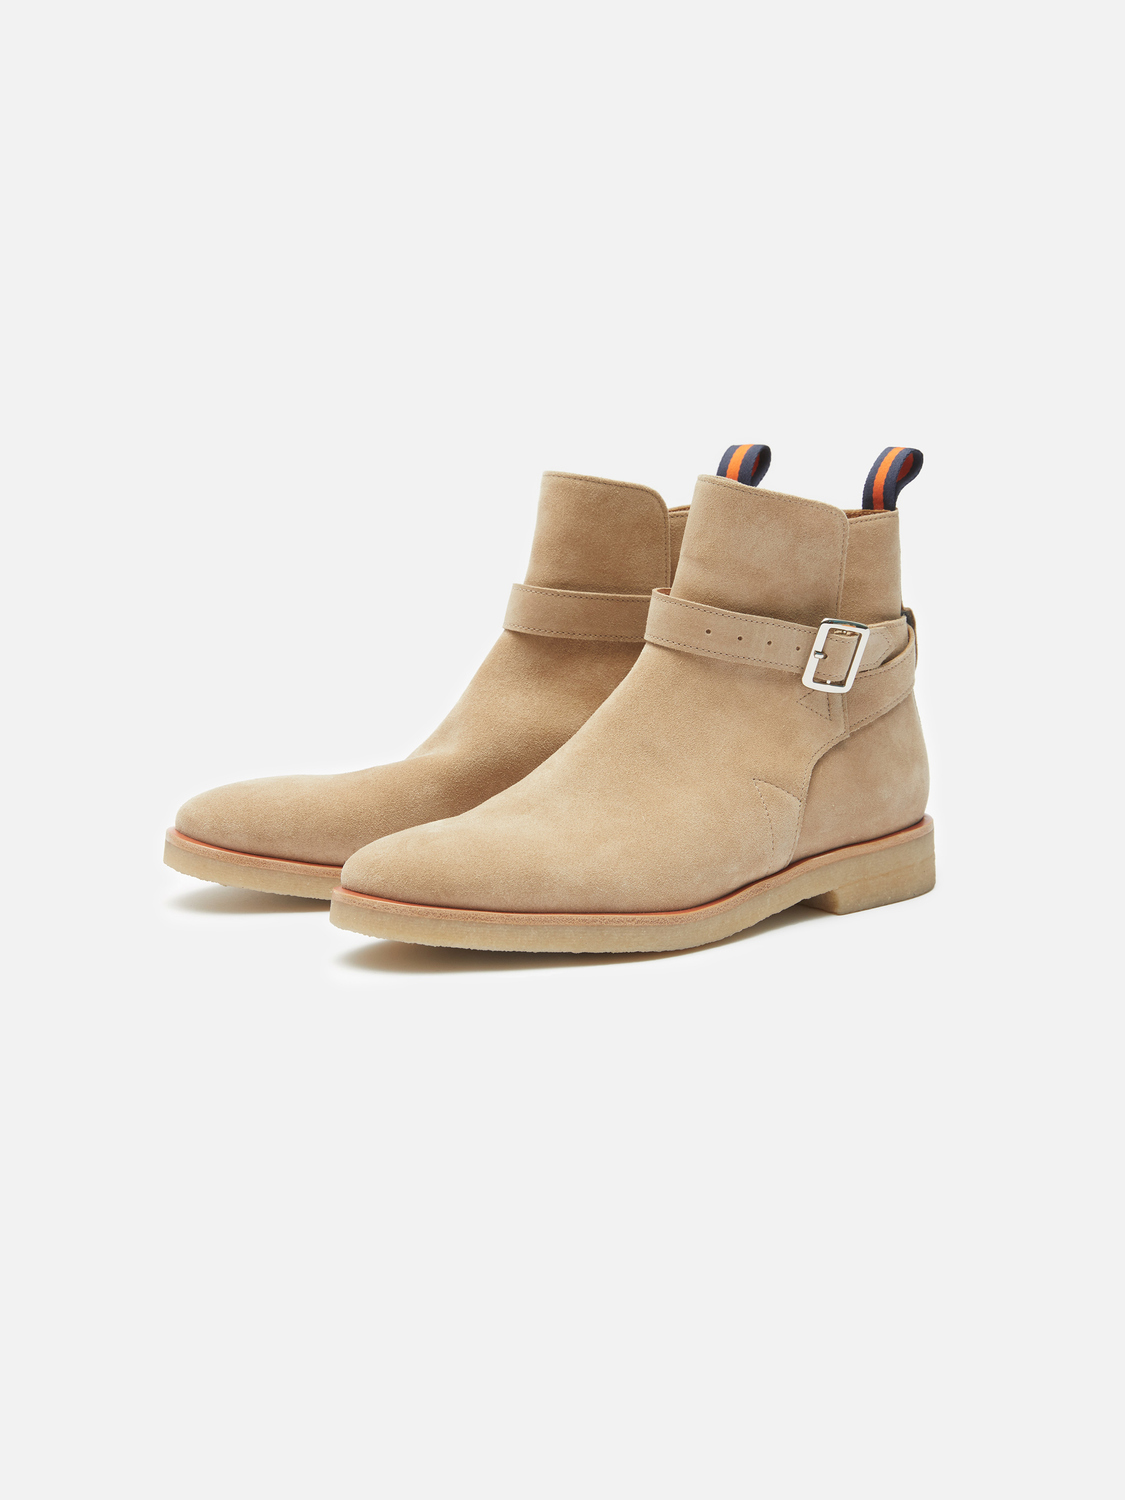 49e8edbcb23ed Carl Suede Belted Boot - Sand   Menlo House